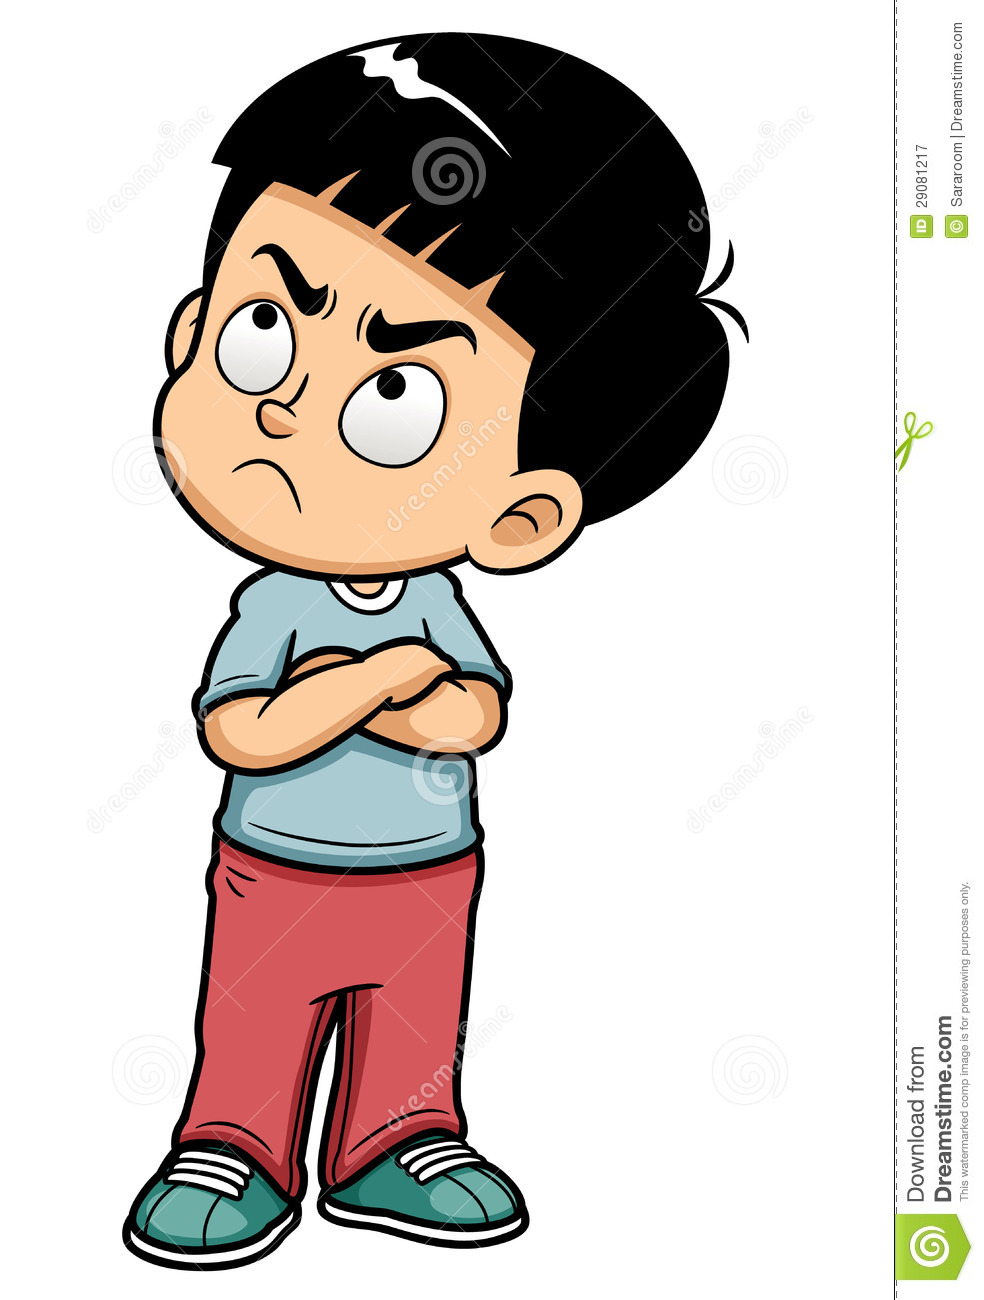 Angry boy clipart 2 » Clipart Station.